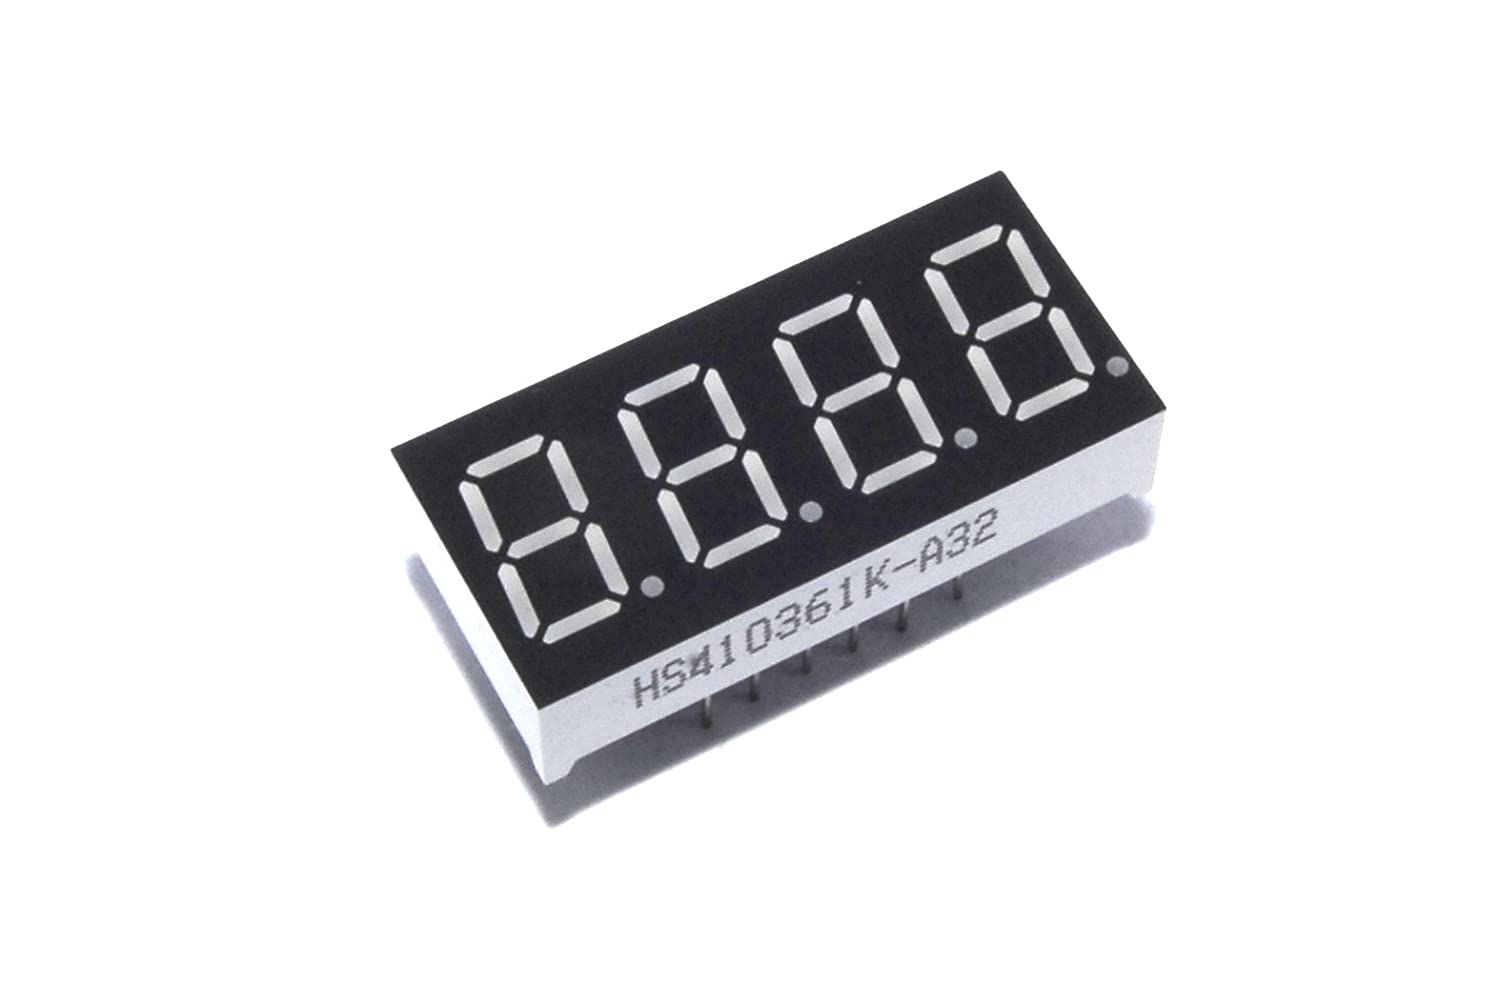 4 Digit Seven Segment Red LED Display 0.36' Cathode Arduino Pi Unbranded/Generic HS410361K-A32